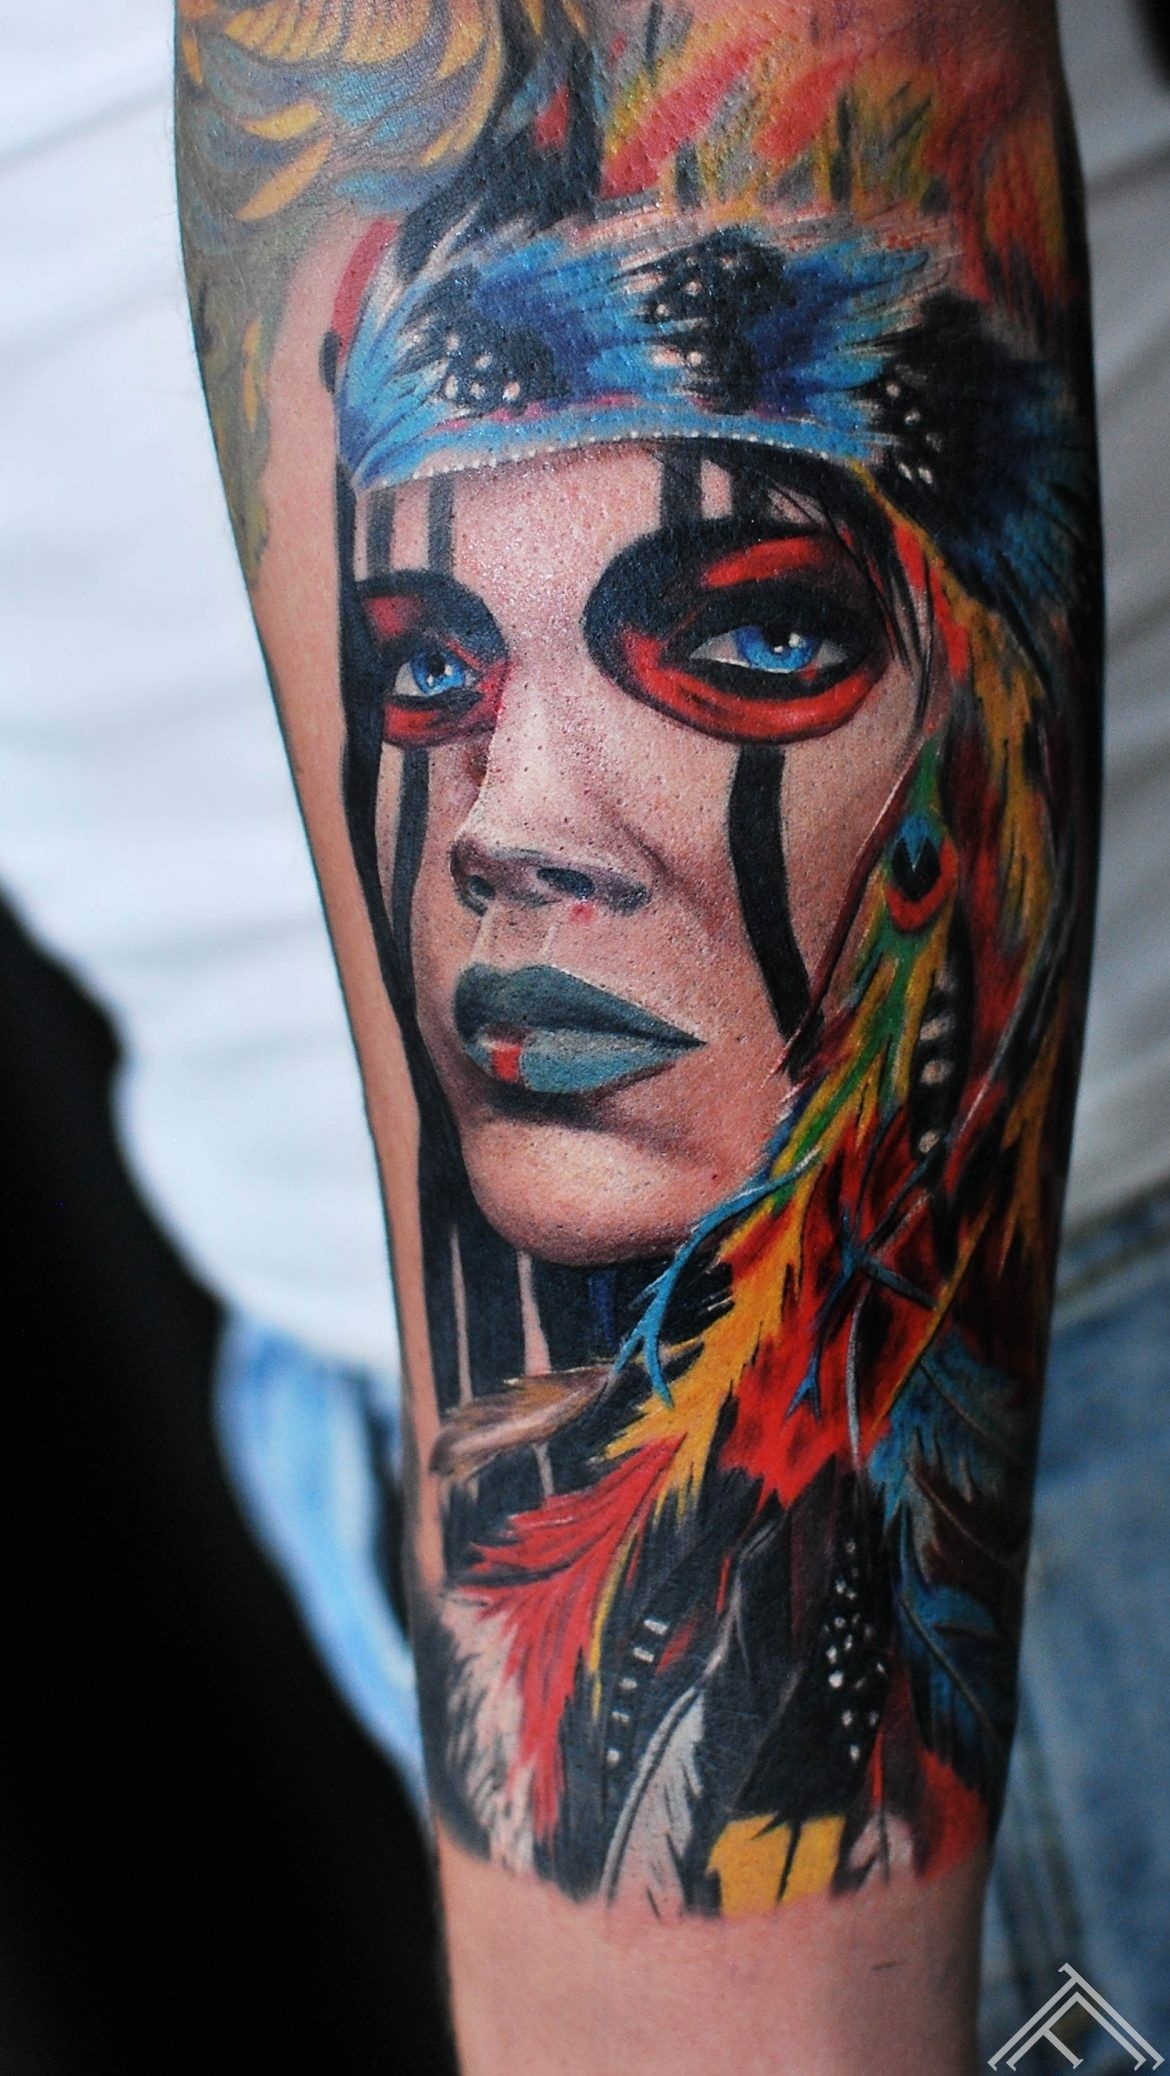 Indian Woman On Mans Arm Artist Janis Andersons Woman Portrait Womanportrait Womantattoo Portraittattoo Colortatt Portrait Tattoo Arm Tattoo Ink Tattoo